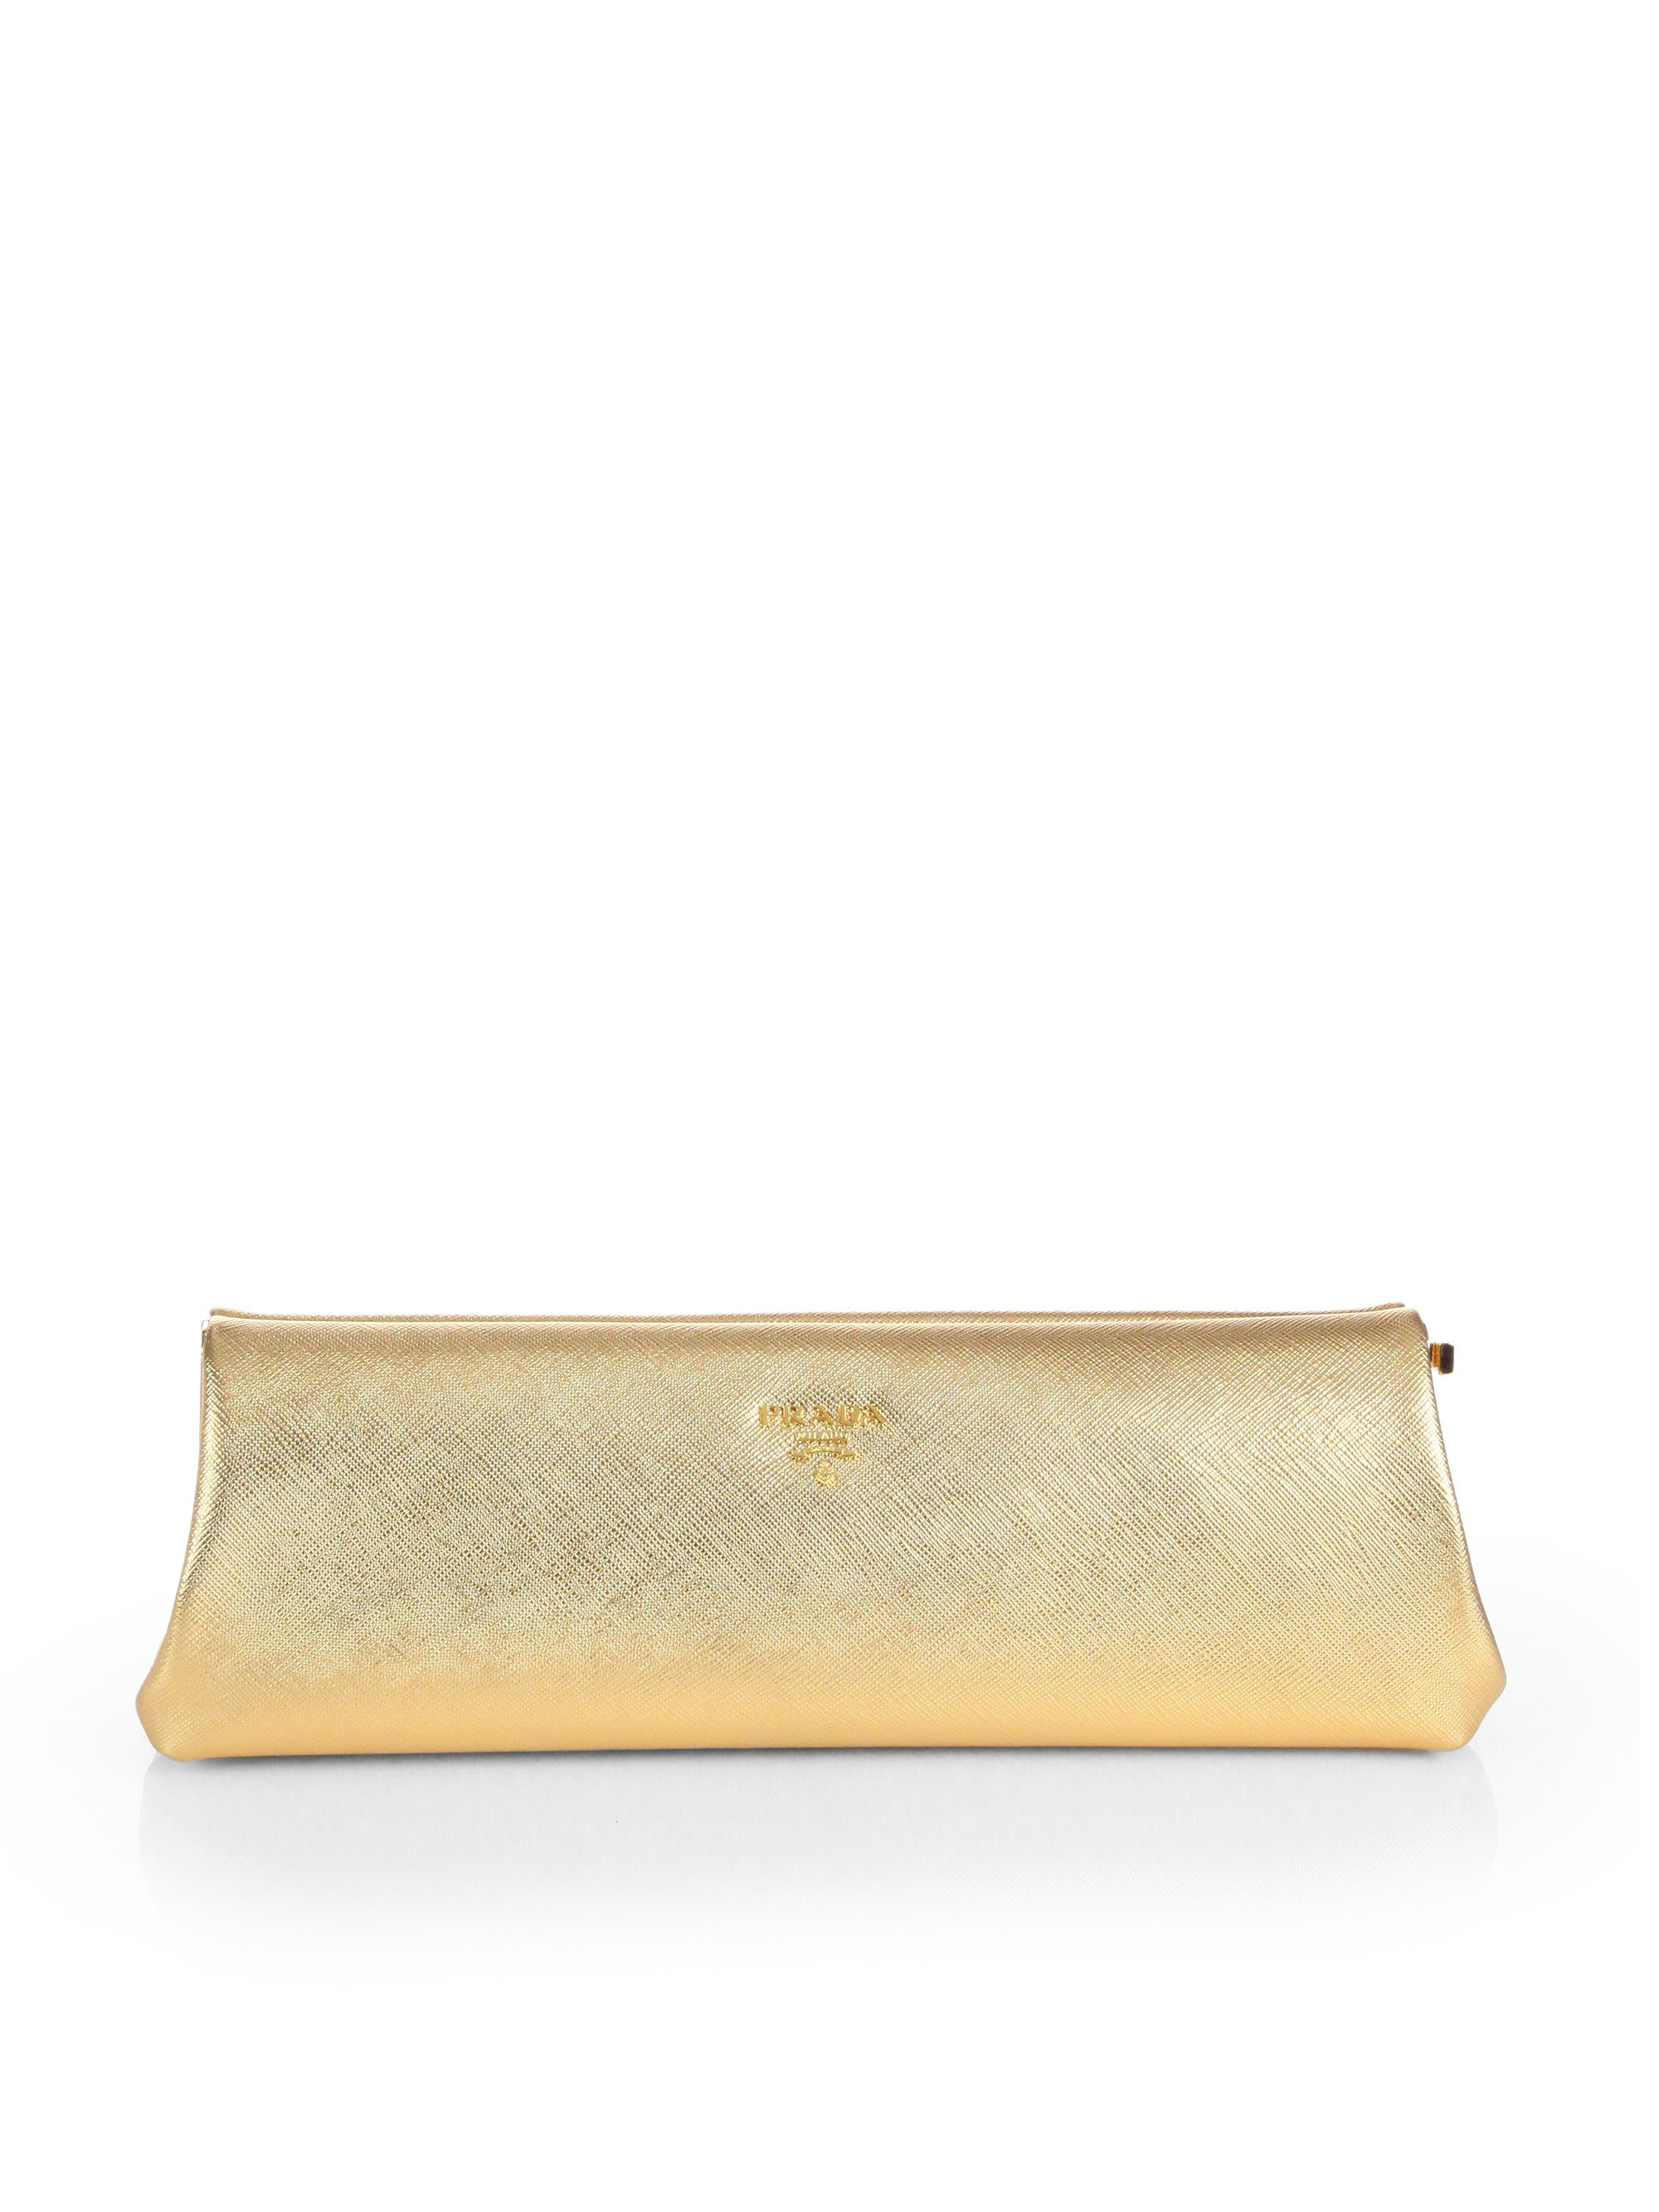 prada saffiano evening bag